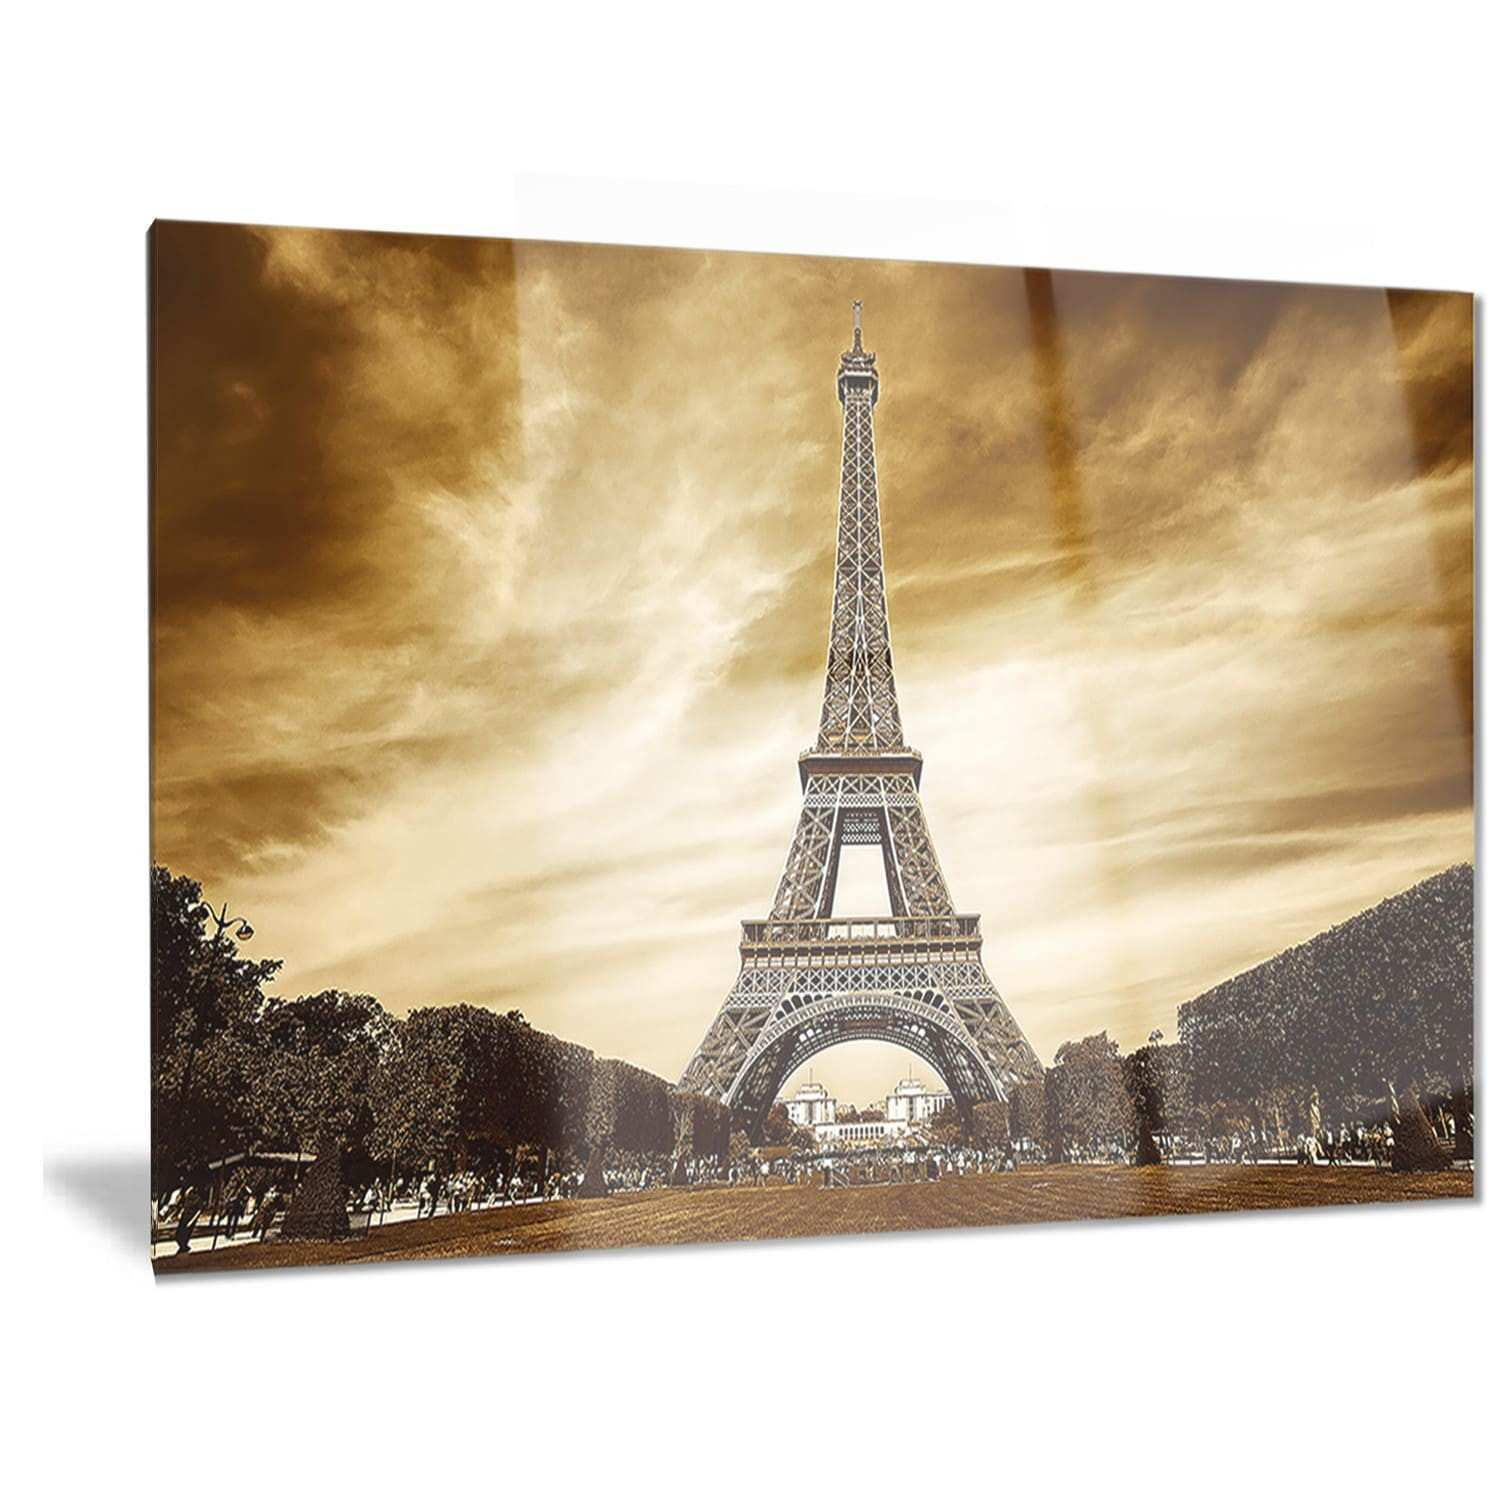 Dorable Metal Eiffel Tower Wall Decor Vignette Wall Art